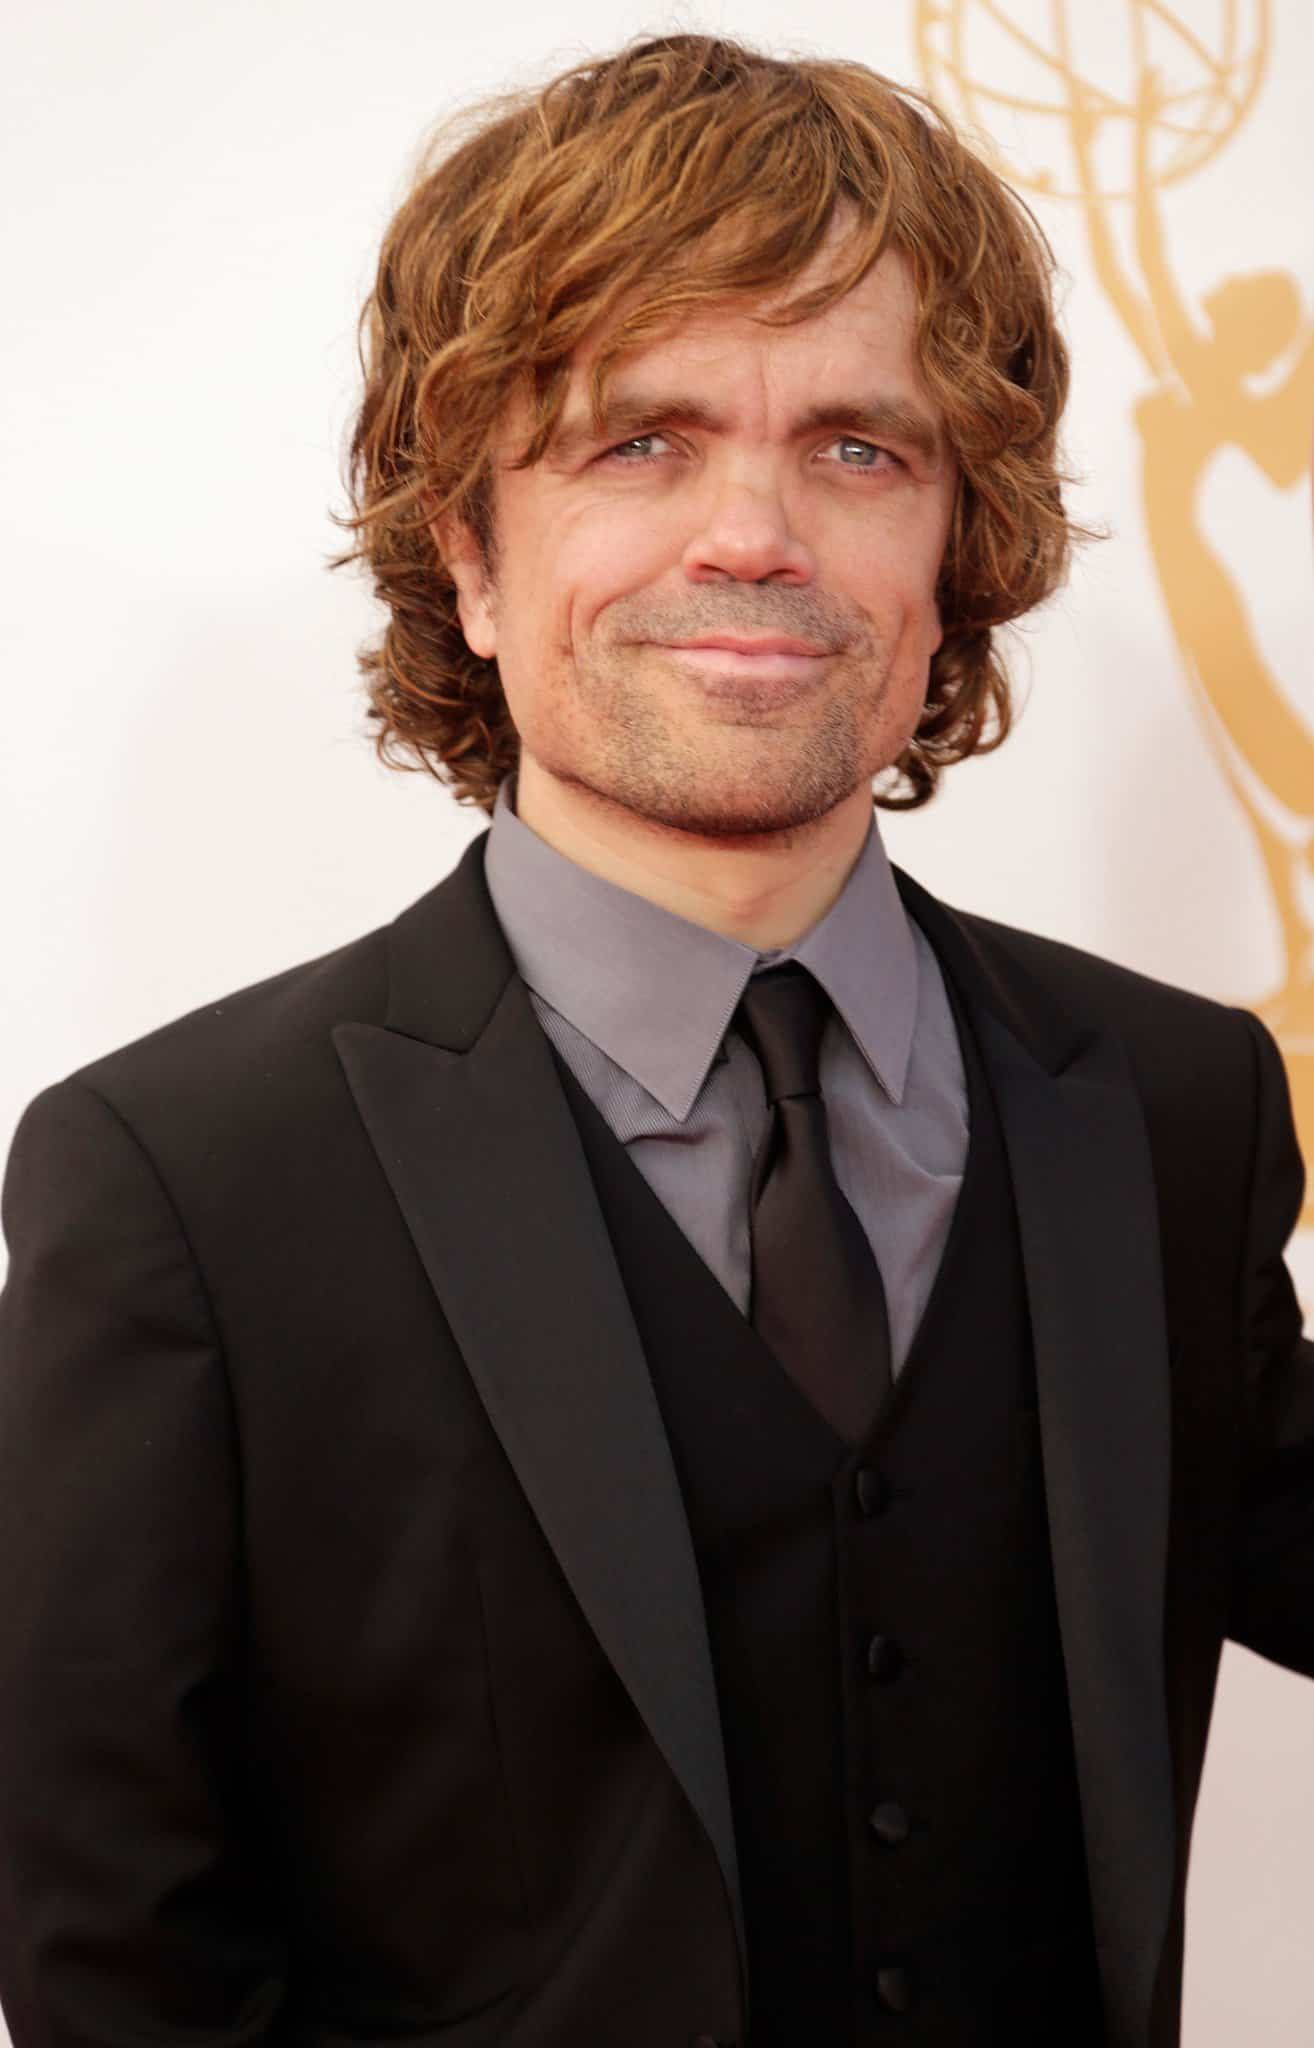 Peter Dinklage smiles to the camera at a red carpet Hollywood event, dressed in a suit and tie